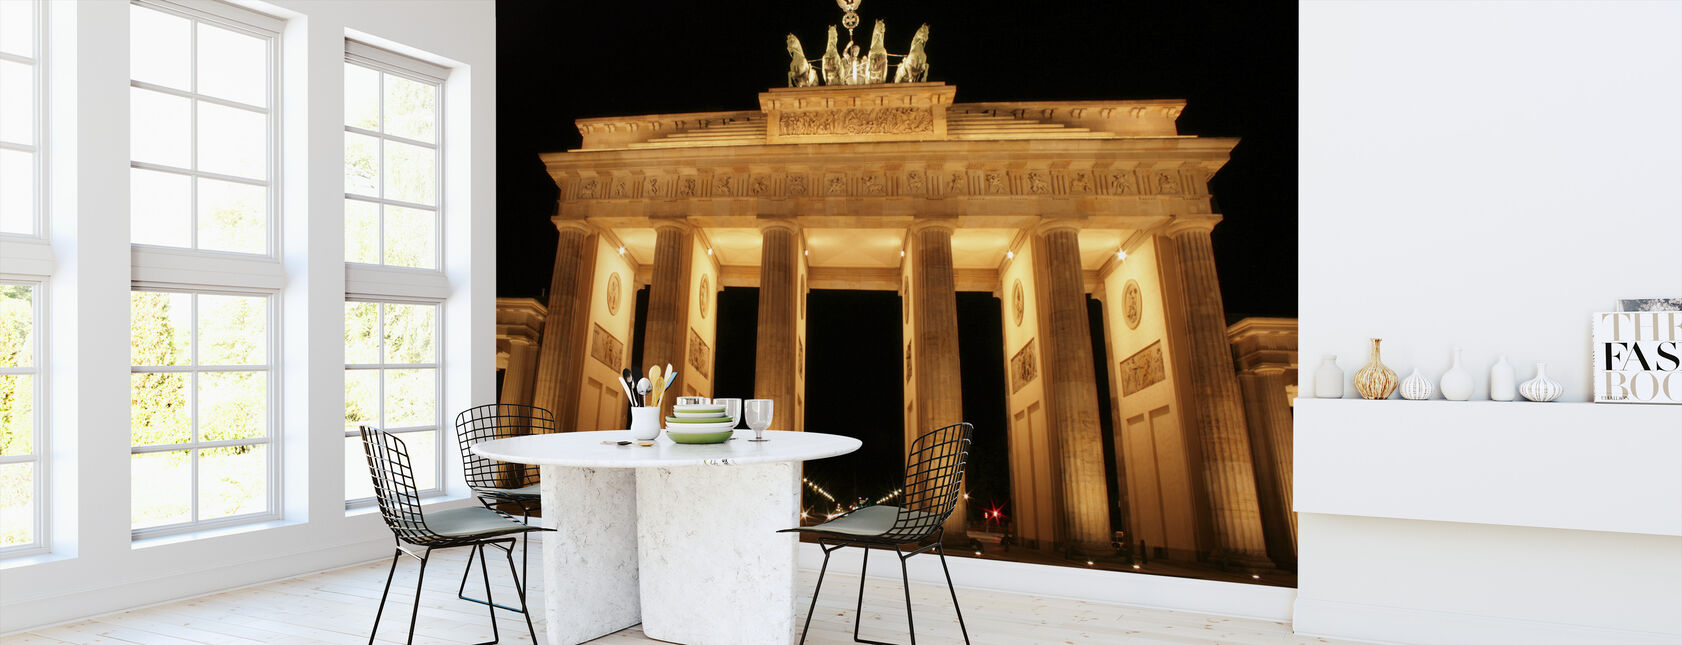 Brandenburg Gate at Night - Wallpaper - Kitchen